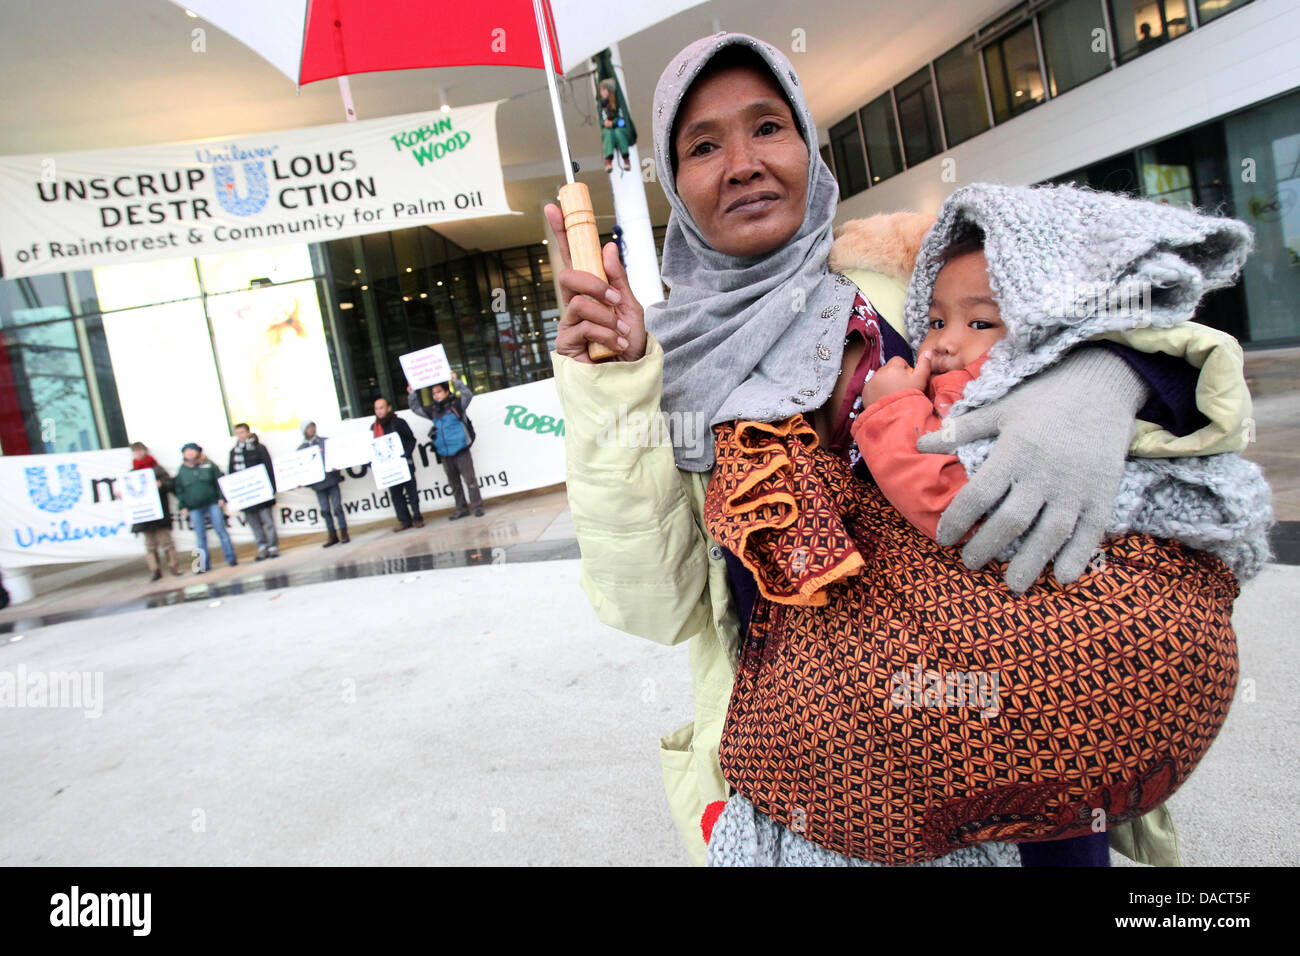 Indonesian activist Ida and her one year old son Agung protest together with activists from the environmental protection organization Robin Wood in front of the Unilever building in Hafencity in Hamburg, Germany, 14 December 2011. Environmental protection activists want to call attention to the destruction of the Indonesian tropical forests for the production of palm oil with the c Stock Photo